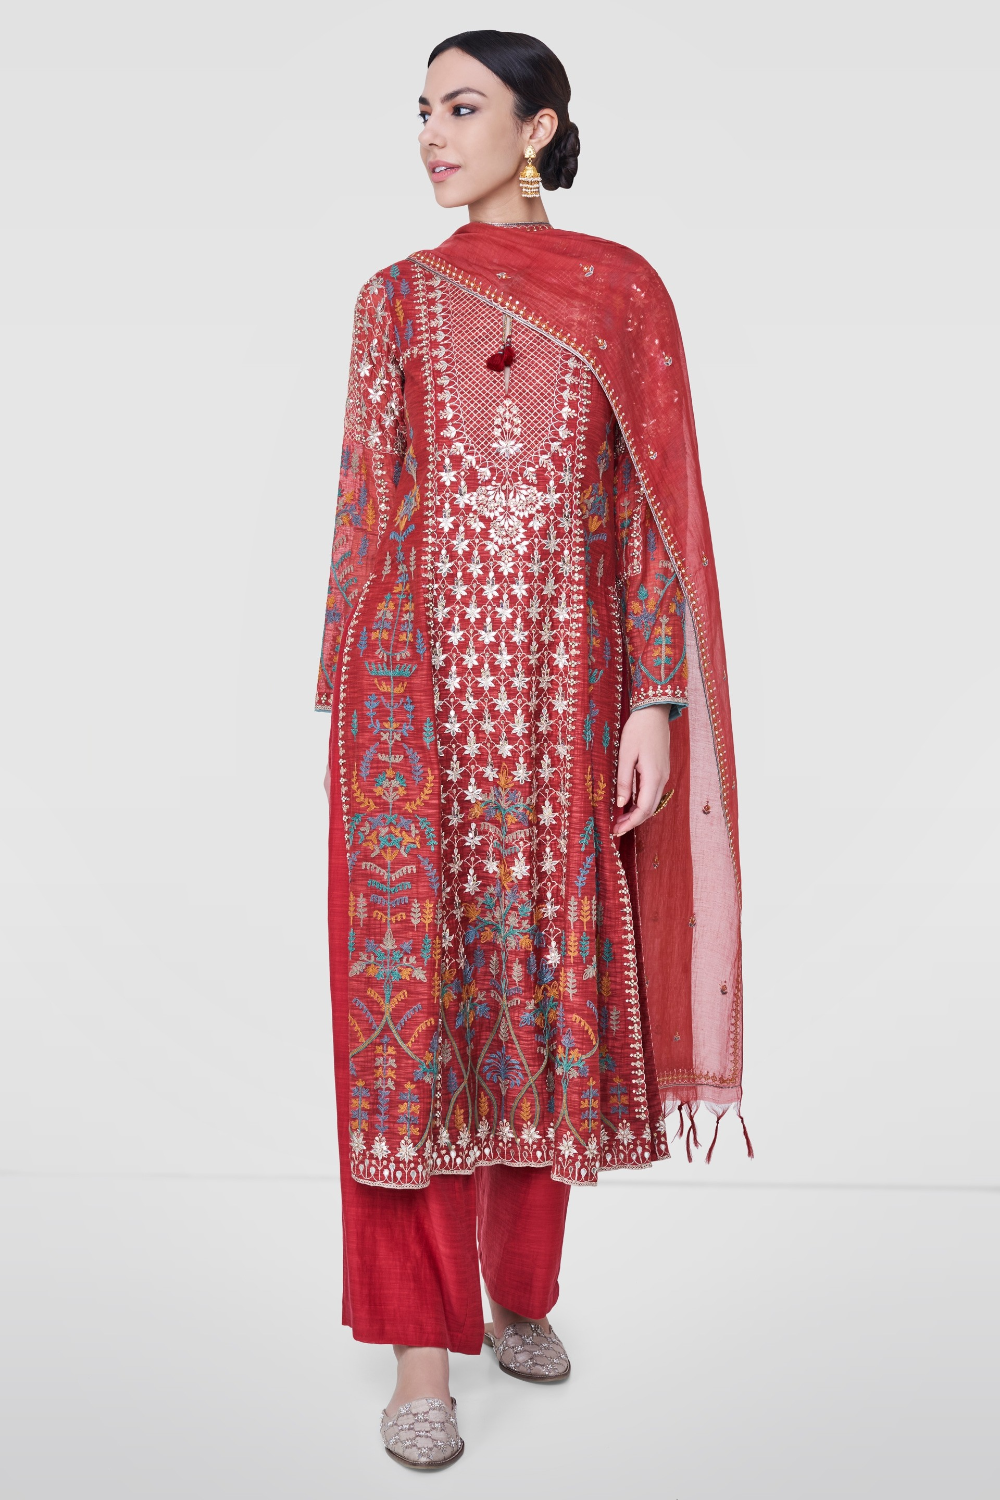 Aslesha Suit in 2020 Indian designer outfits, Indian